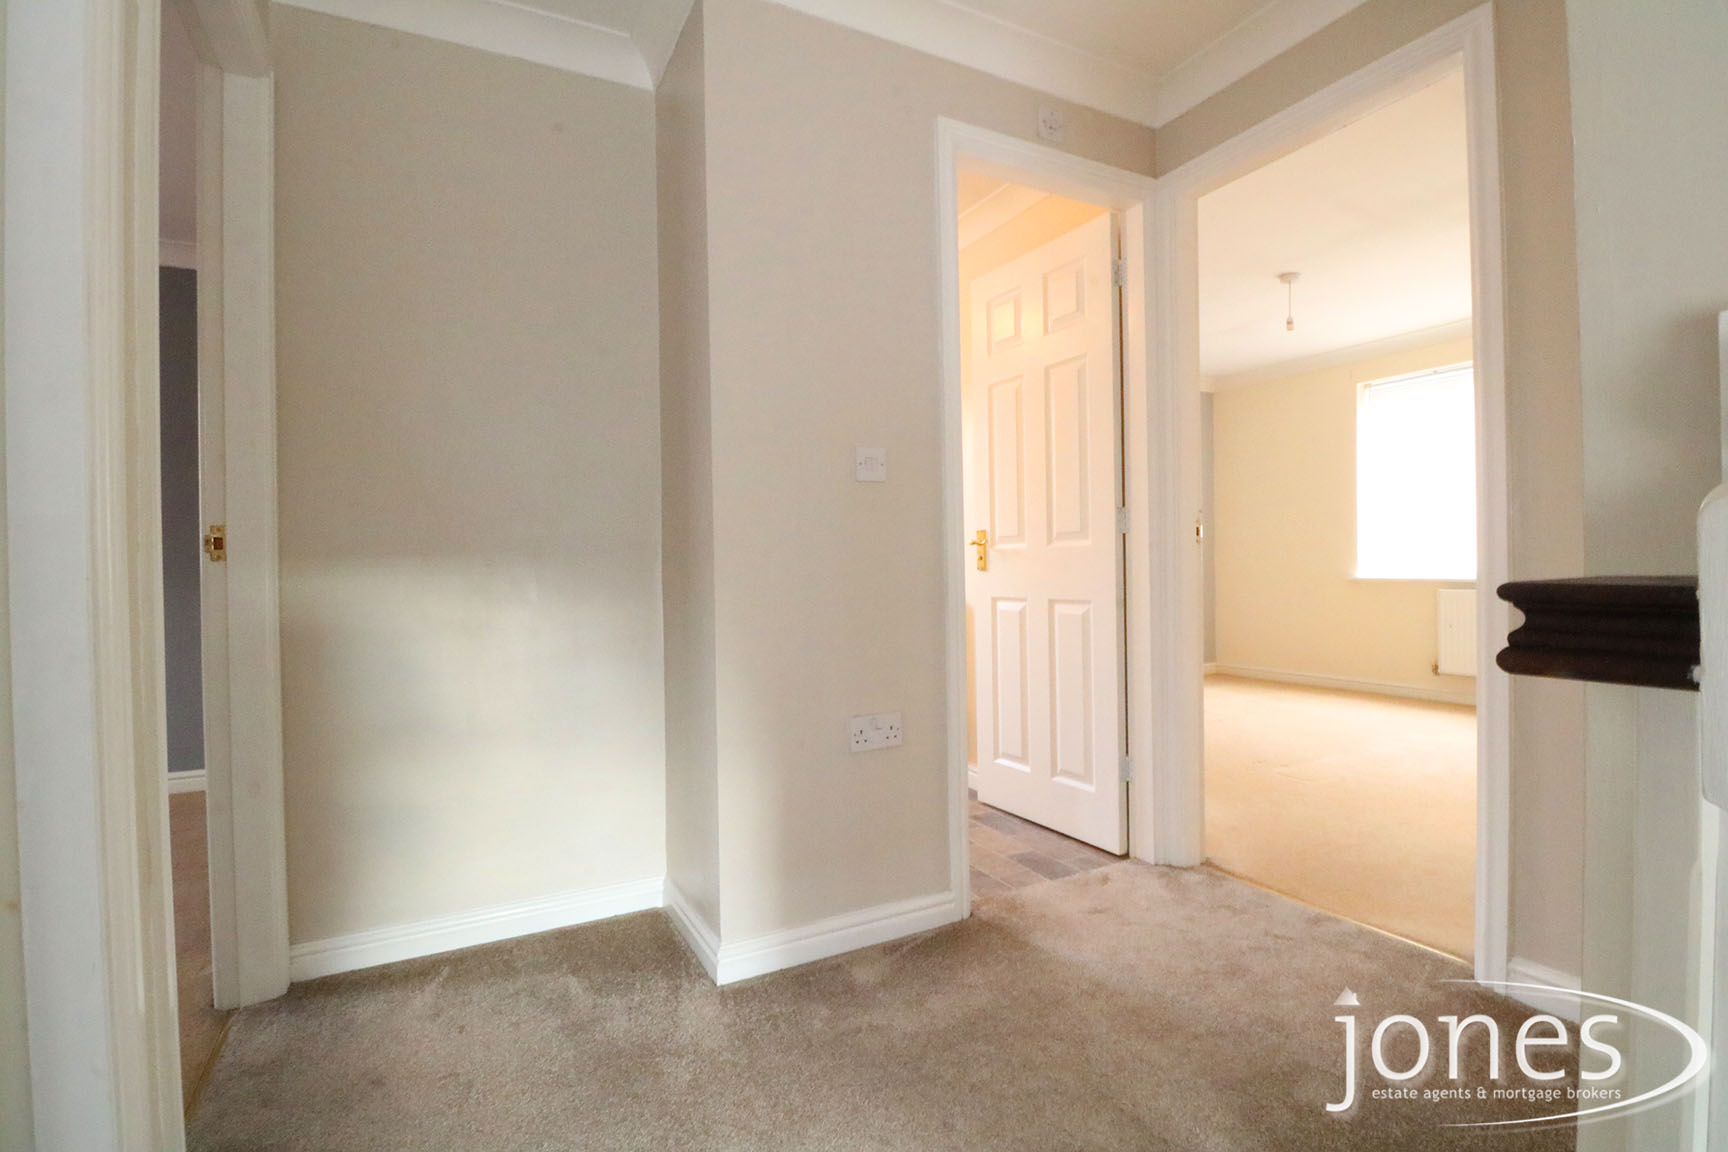 Home for Sale Let - Photo 08 Timothy Court, Stockton on Tees, TS18 3AU